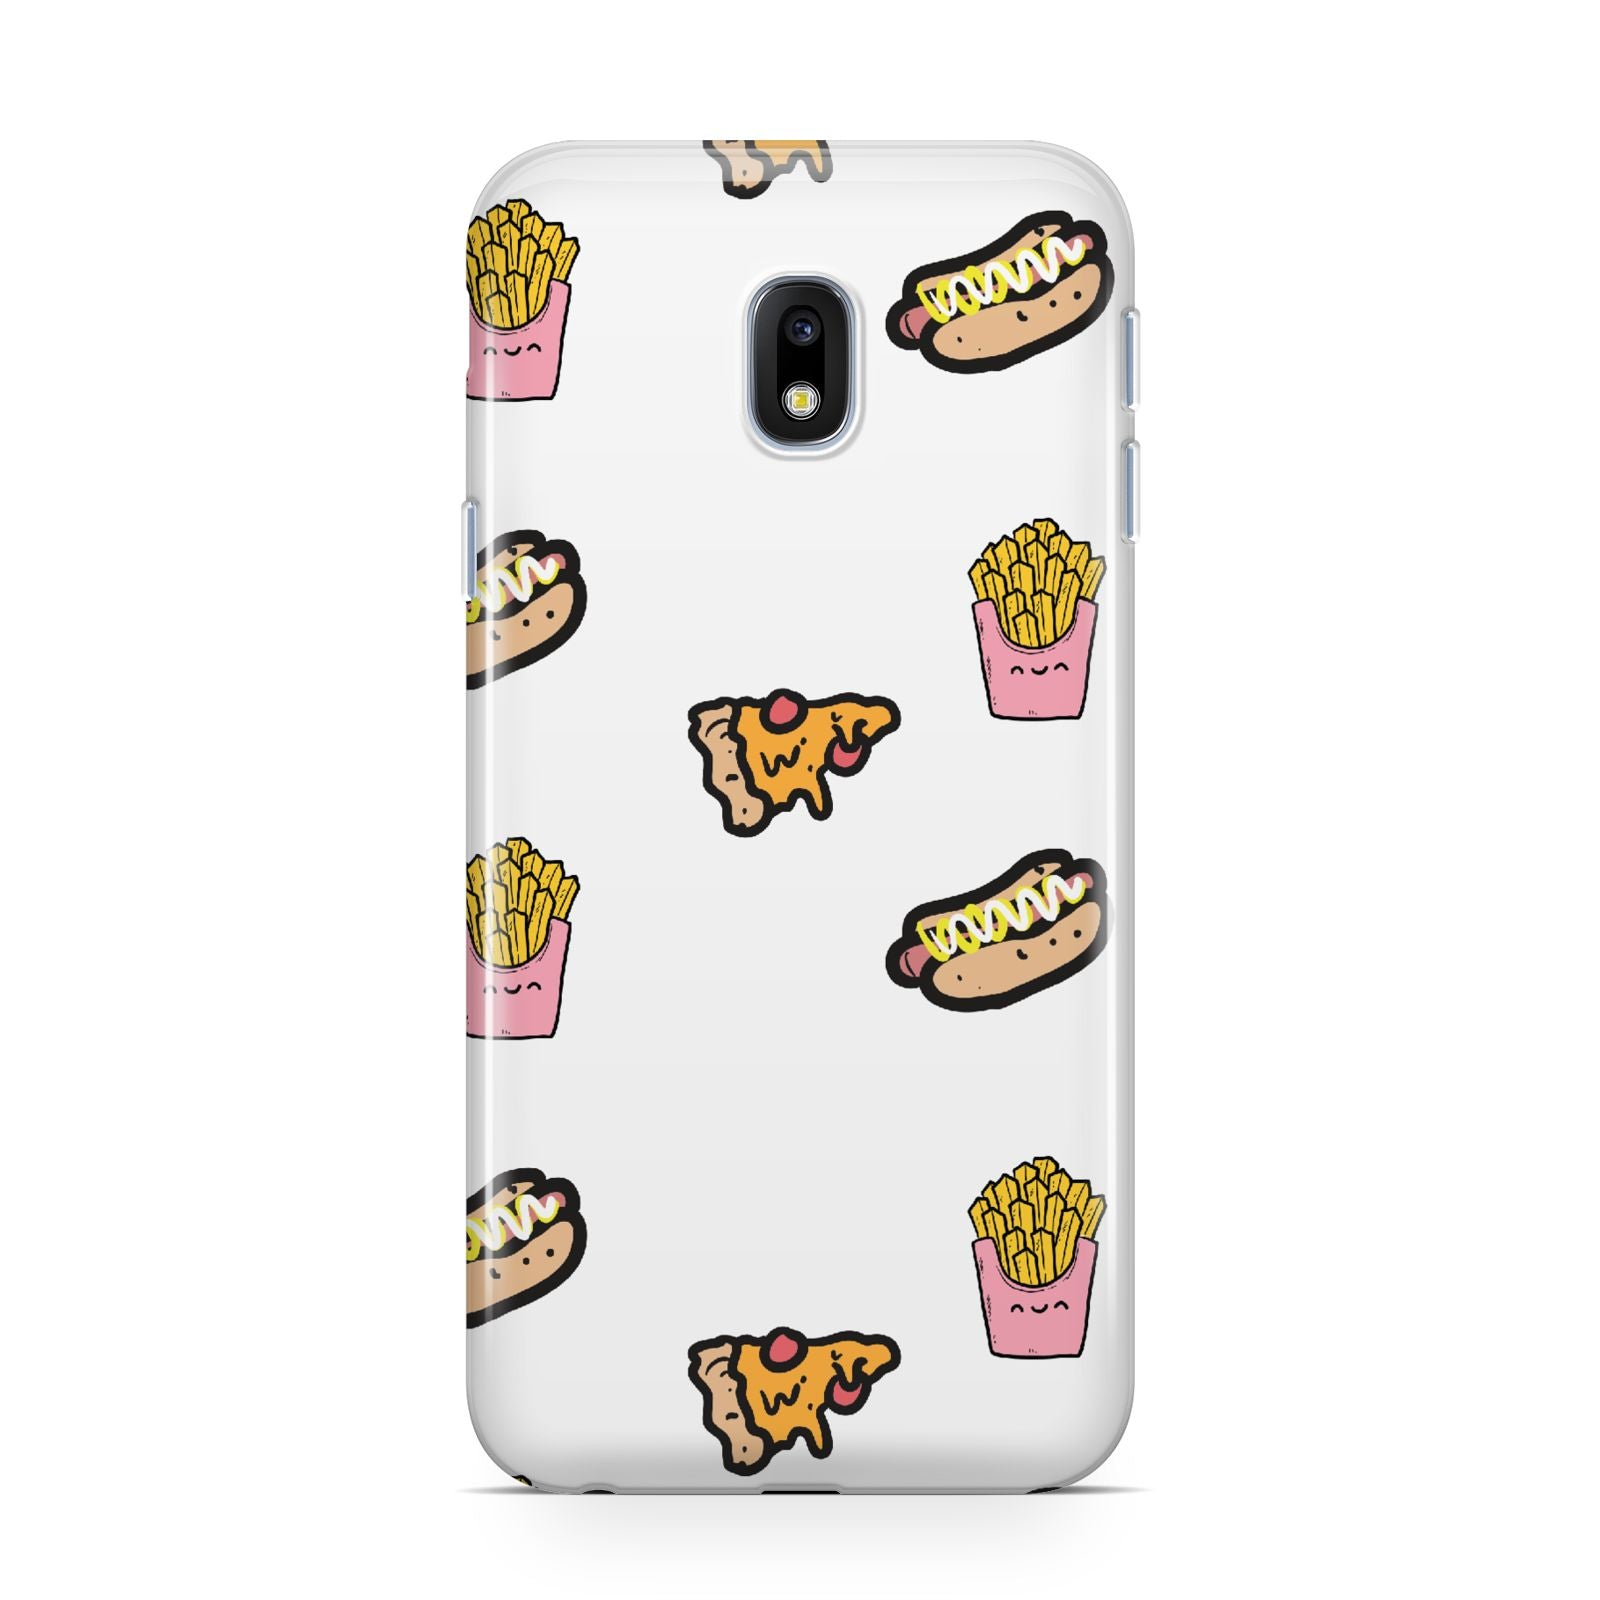 Fries Pizza Hot Dog Samsung Galaxy J3 2017 Case